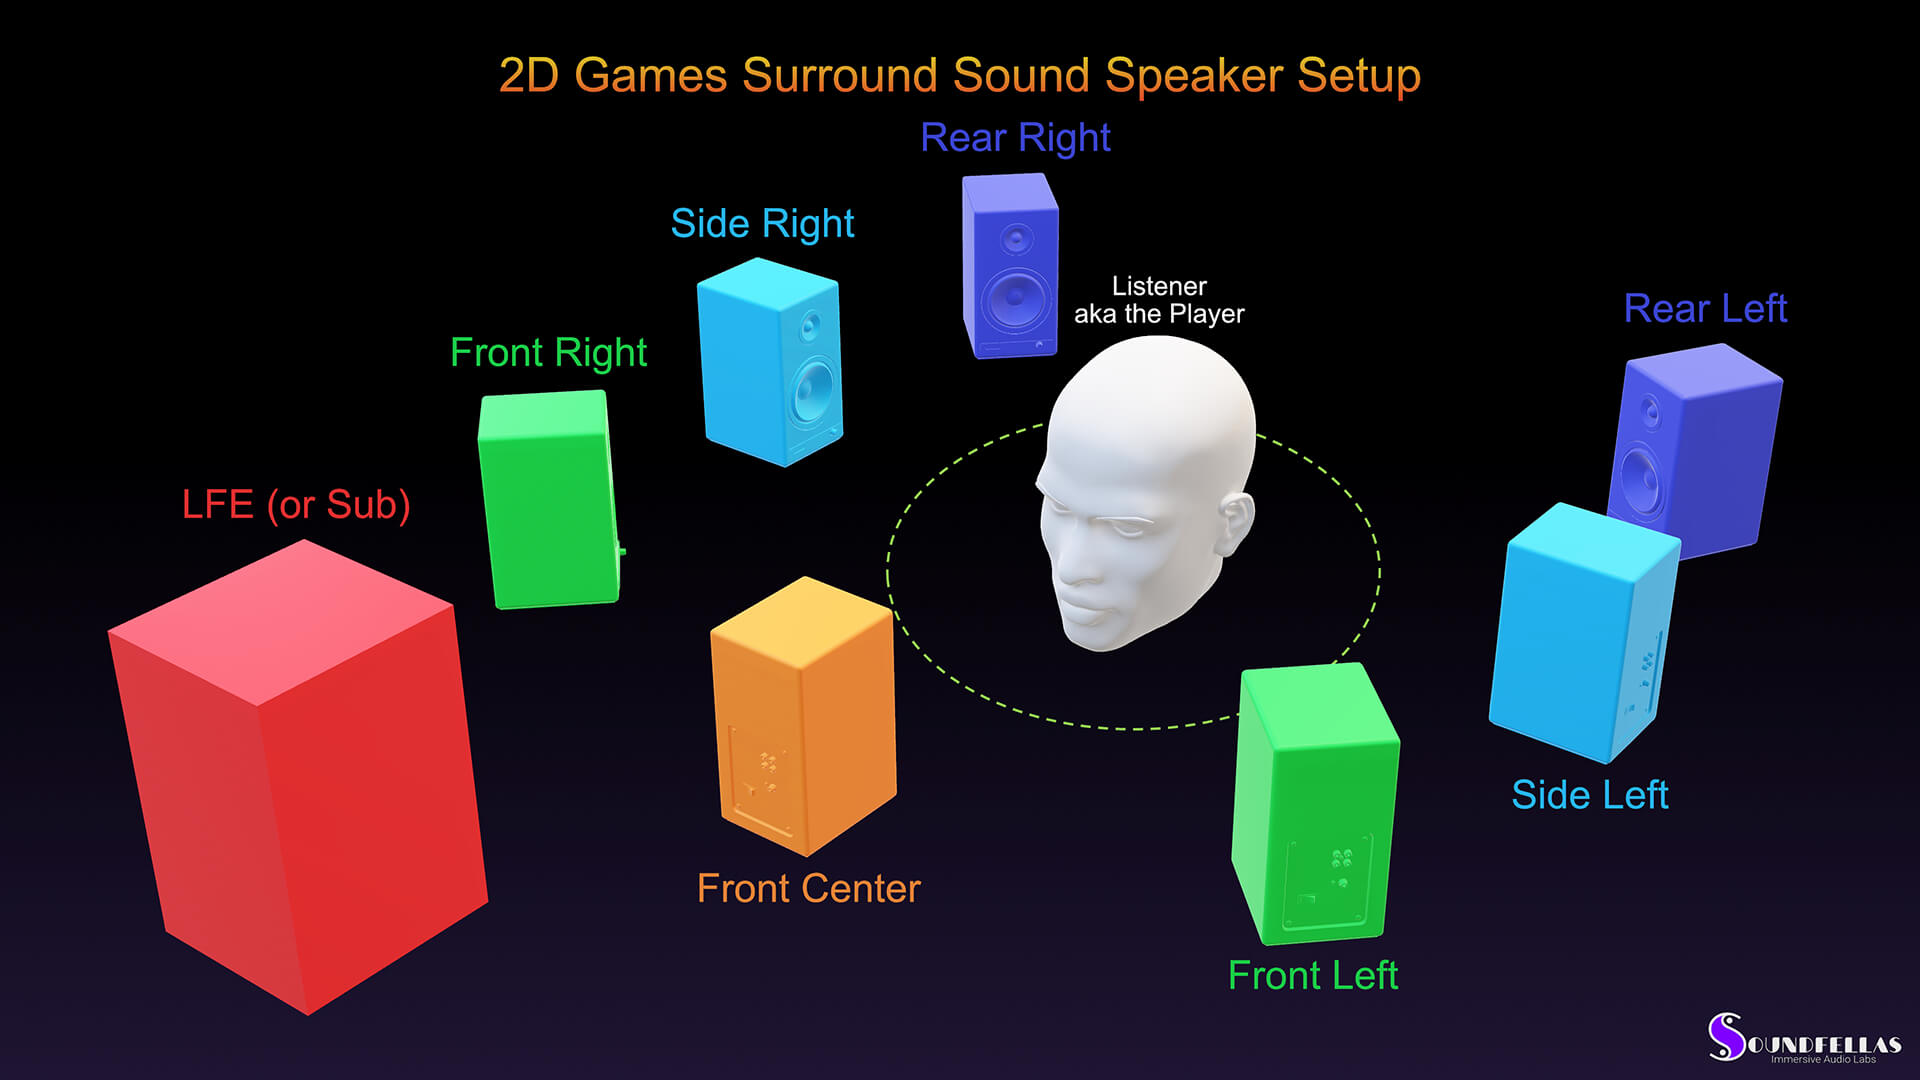 What 2D game developers fear about surround sound and why you should do it anyway page's image titled 2D game surround sound speaker setup